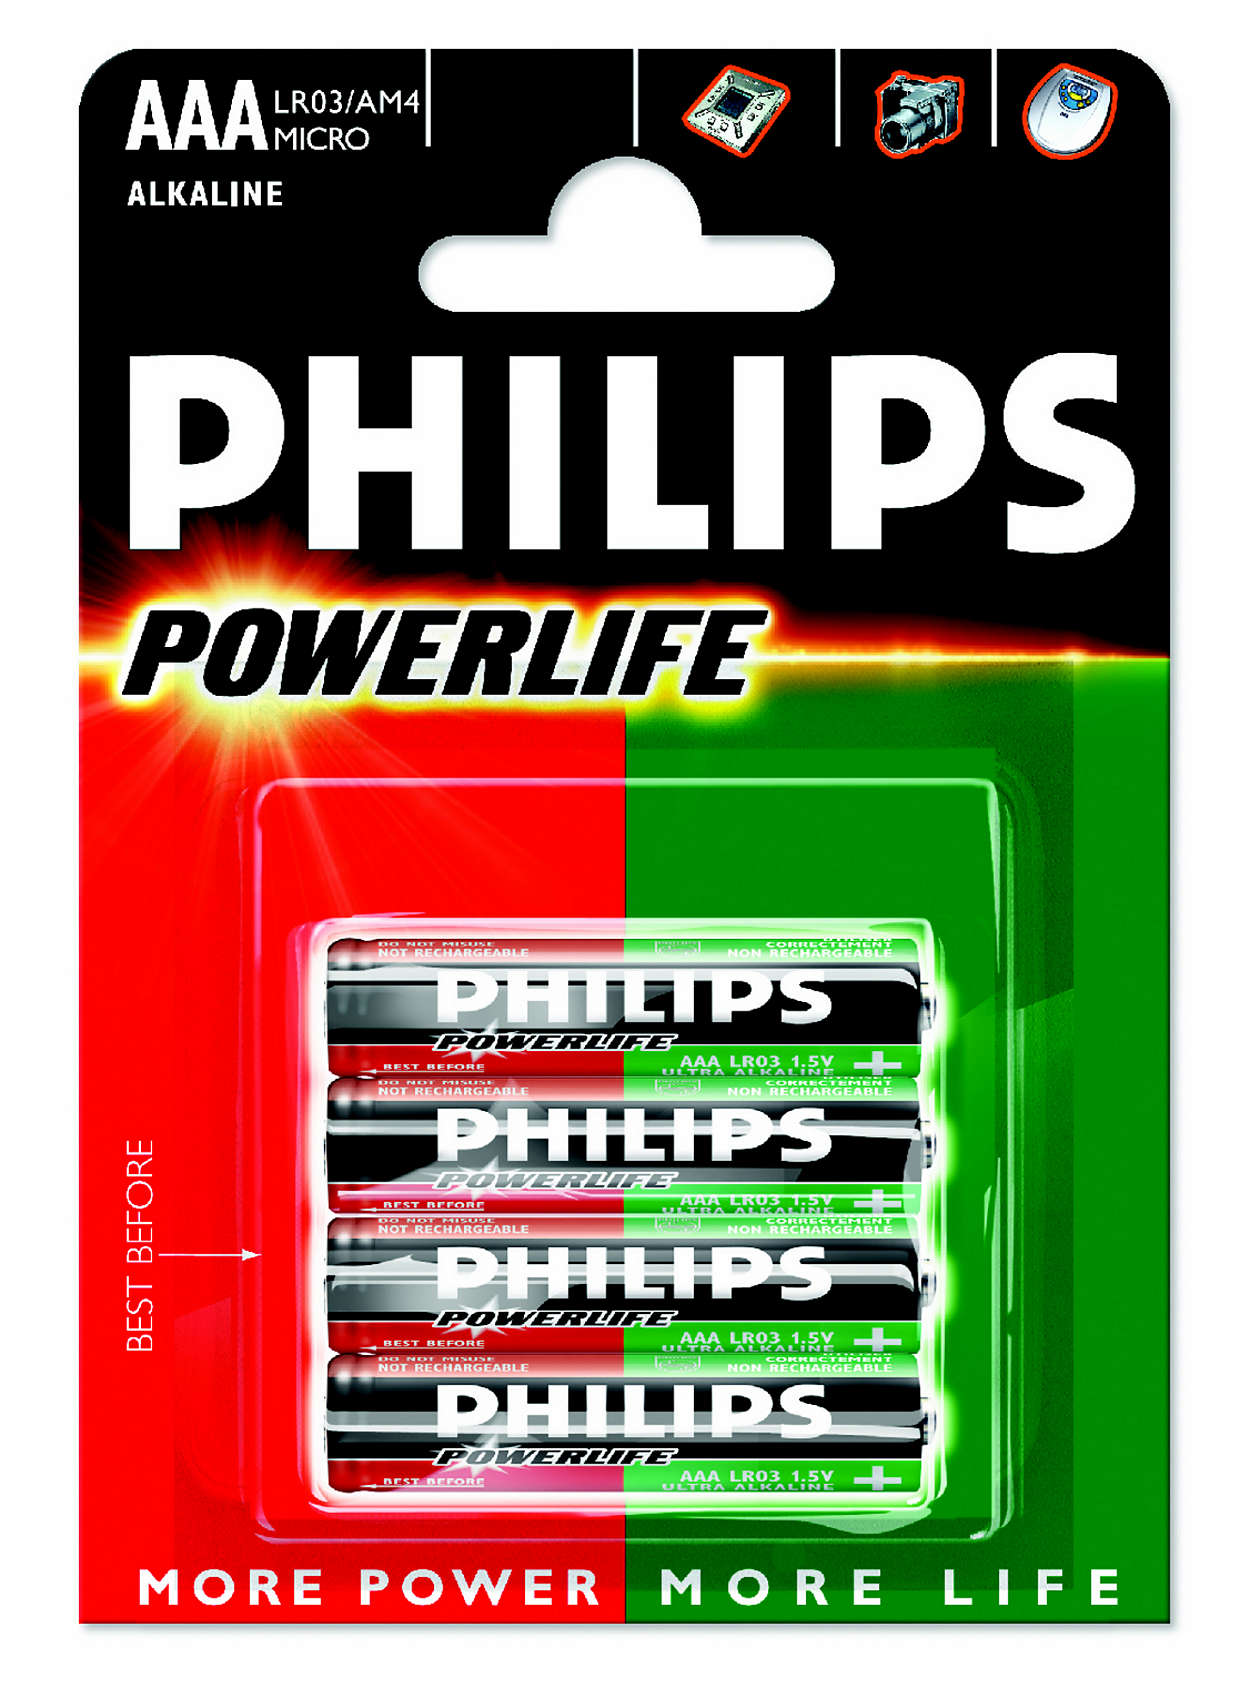 Powers all high energy consuming devices